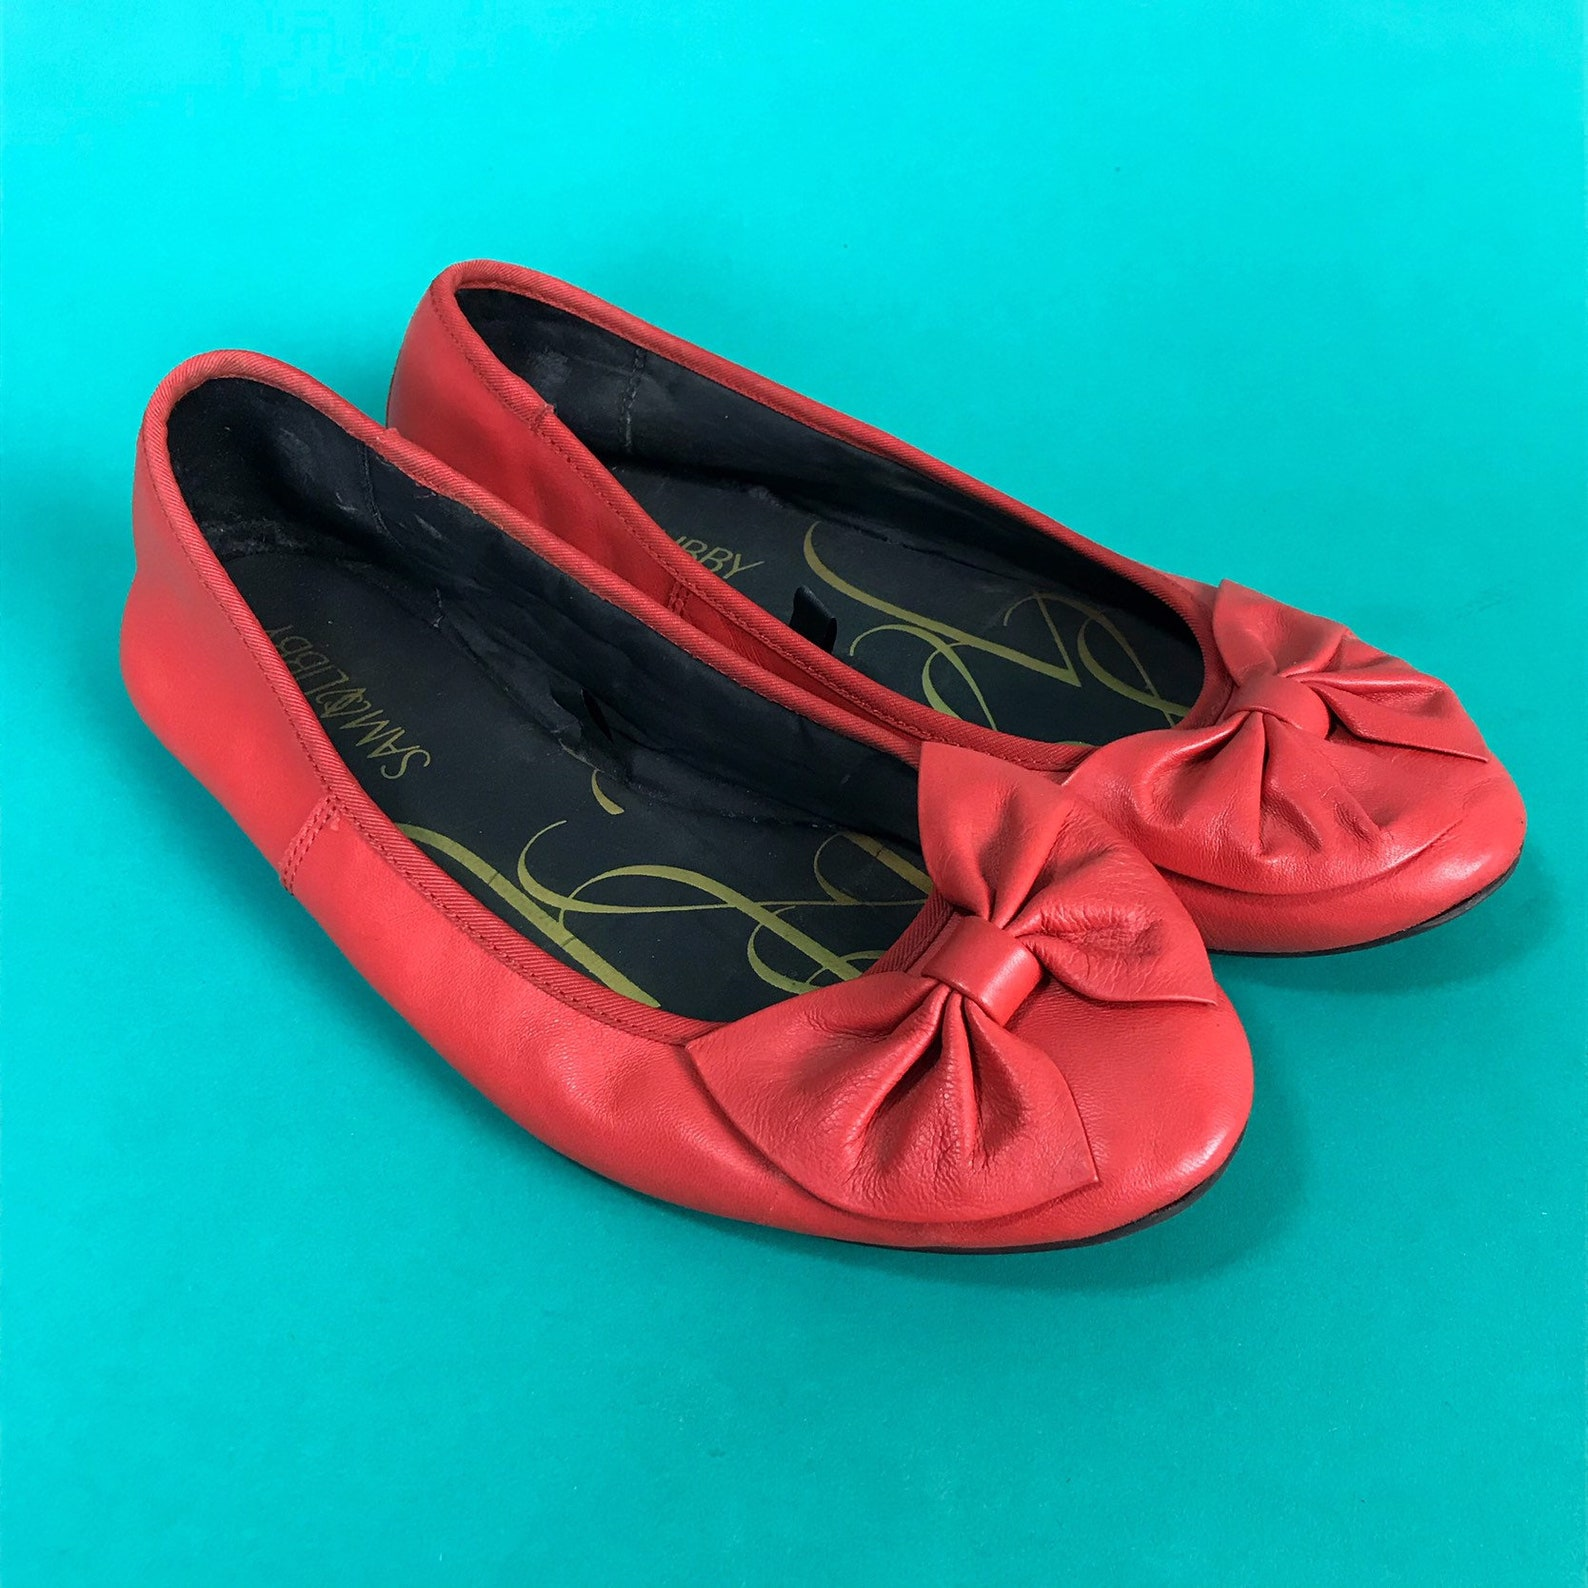 80s sam & libby bow flats size us 9 - chocolate brown cute girly leather ballet flats - spring summer everyday shoe preppy bow v